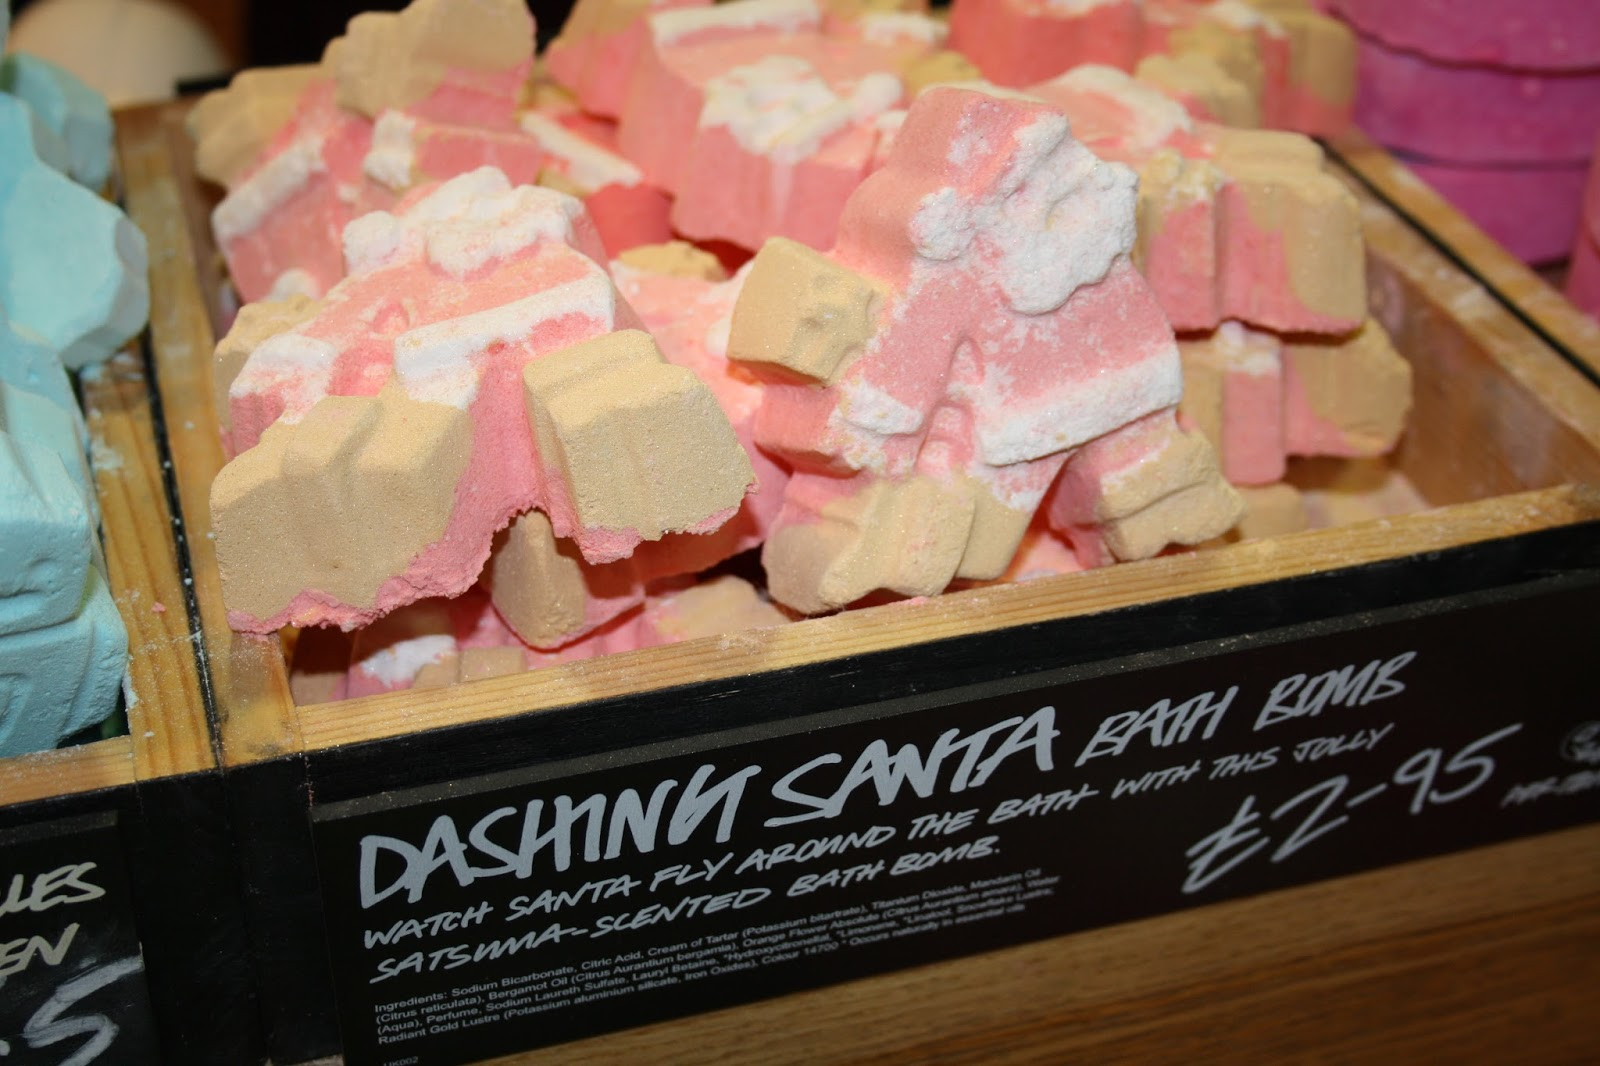 Lush Christmas Launch 2014